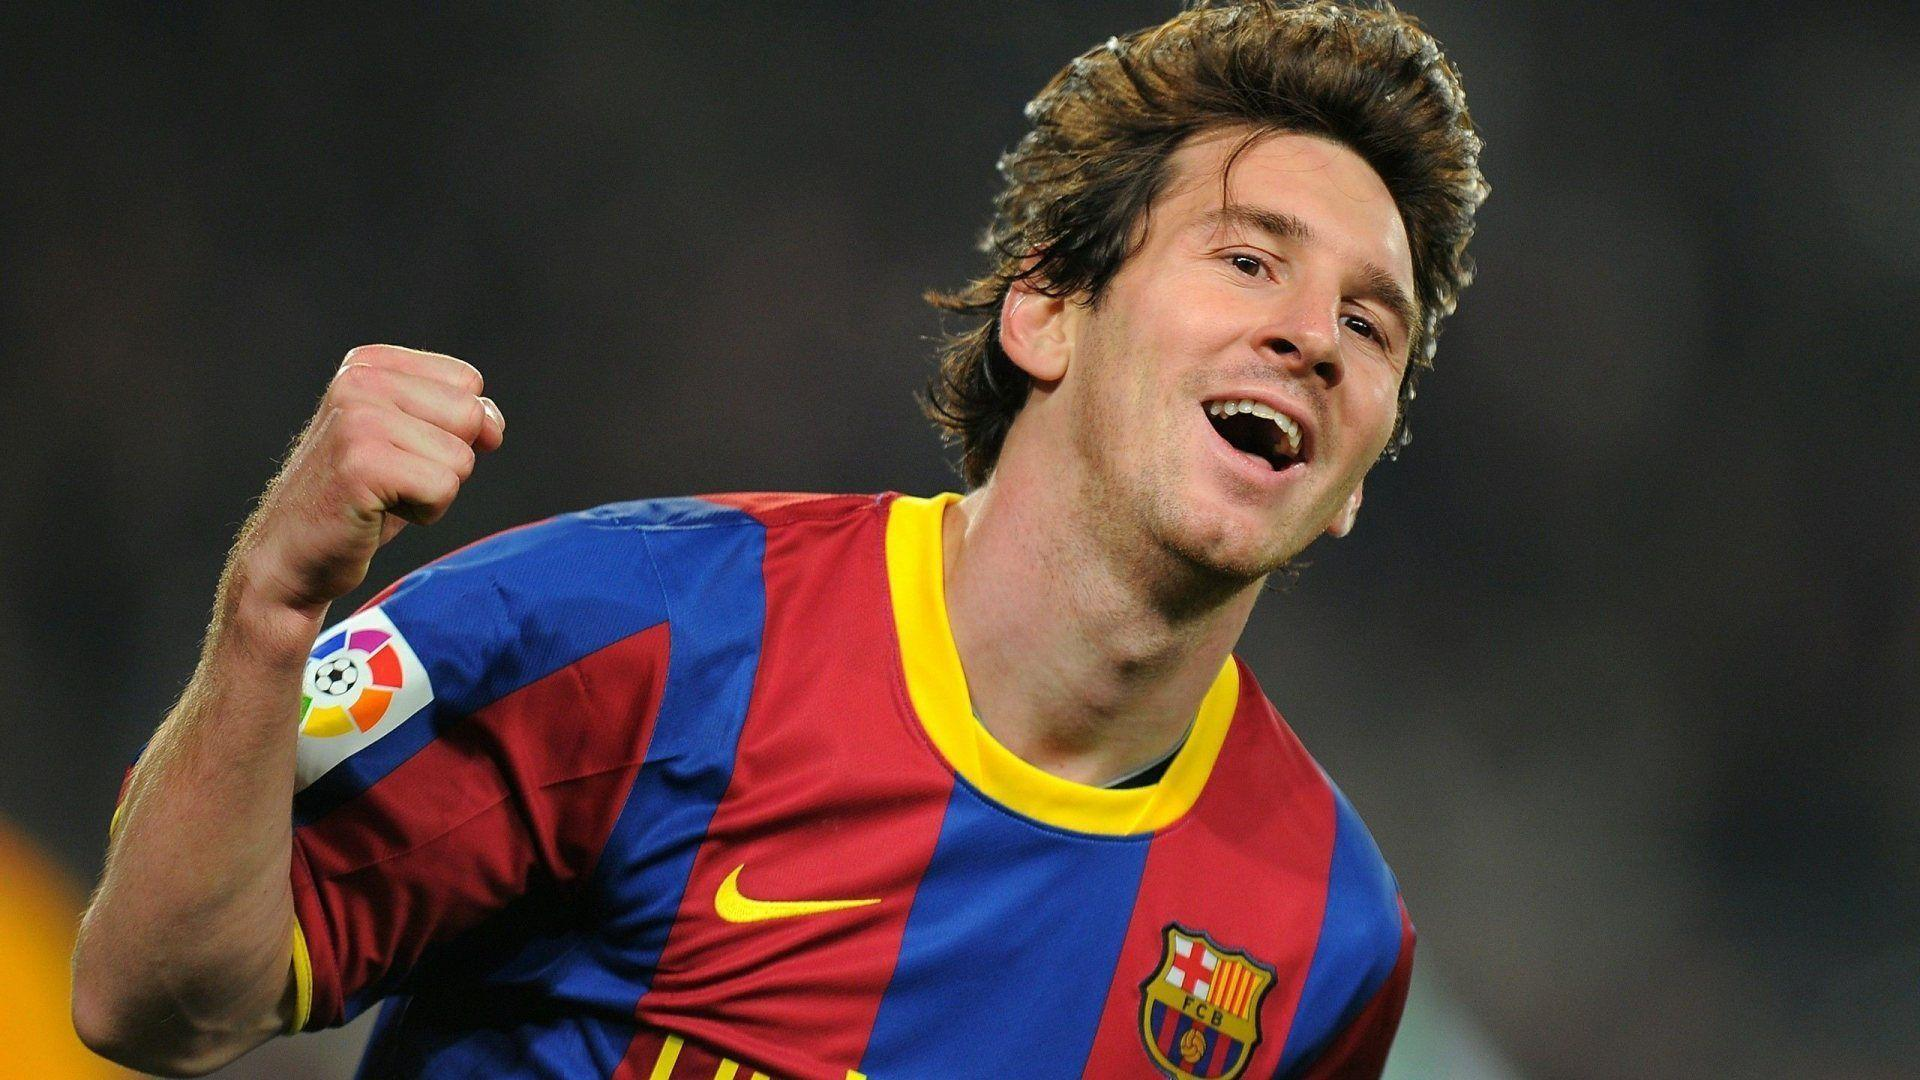 Pix for Gt Messi Hd Wallpapers Desktop 1920x1080PX ~ Neymar Hd ...